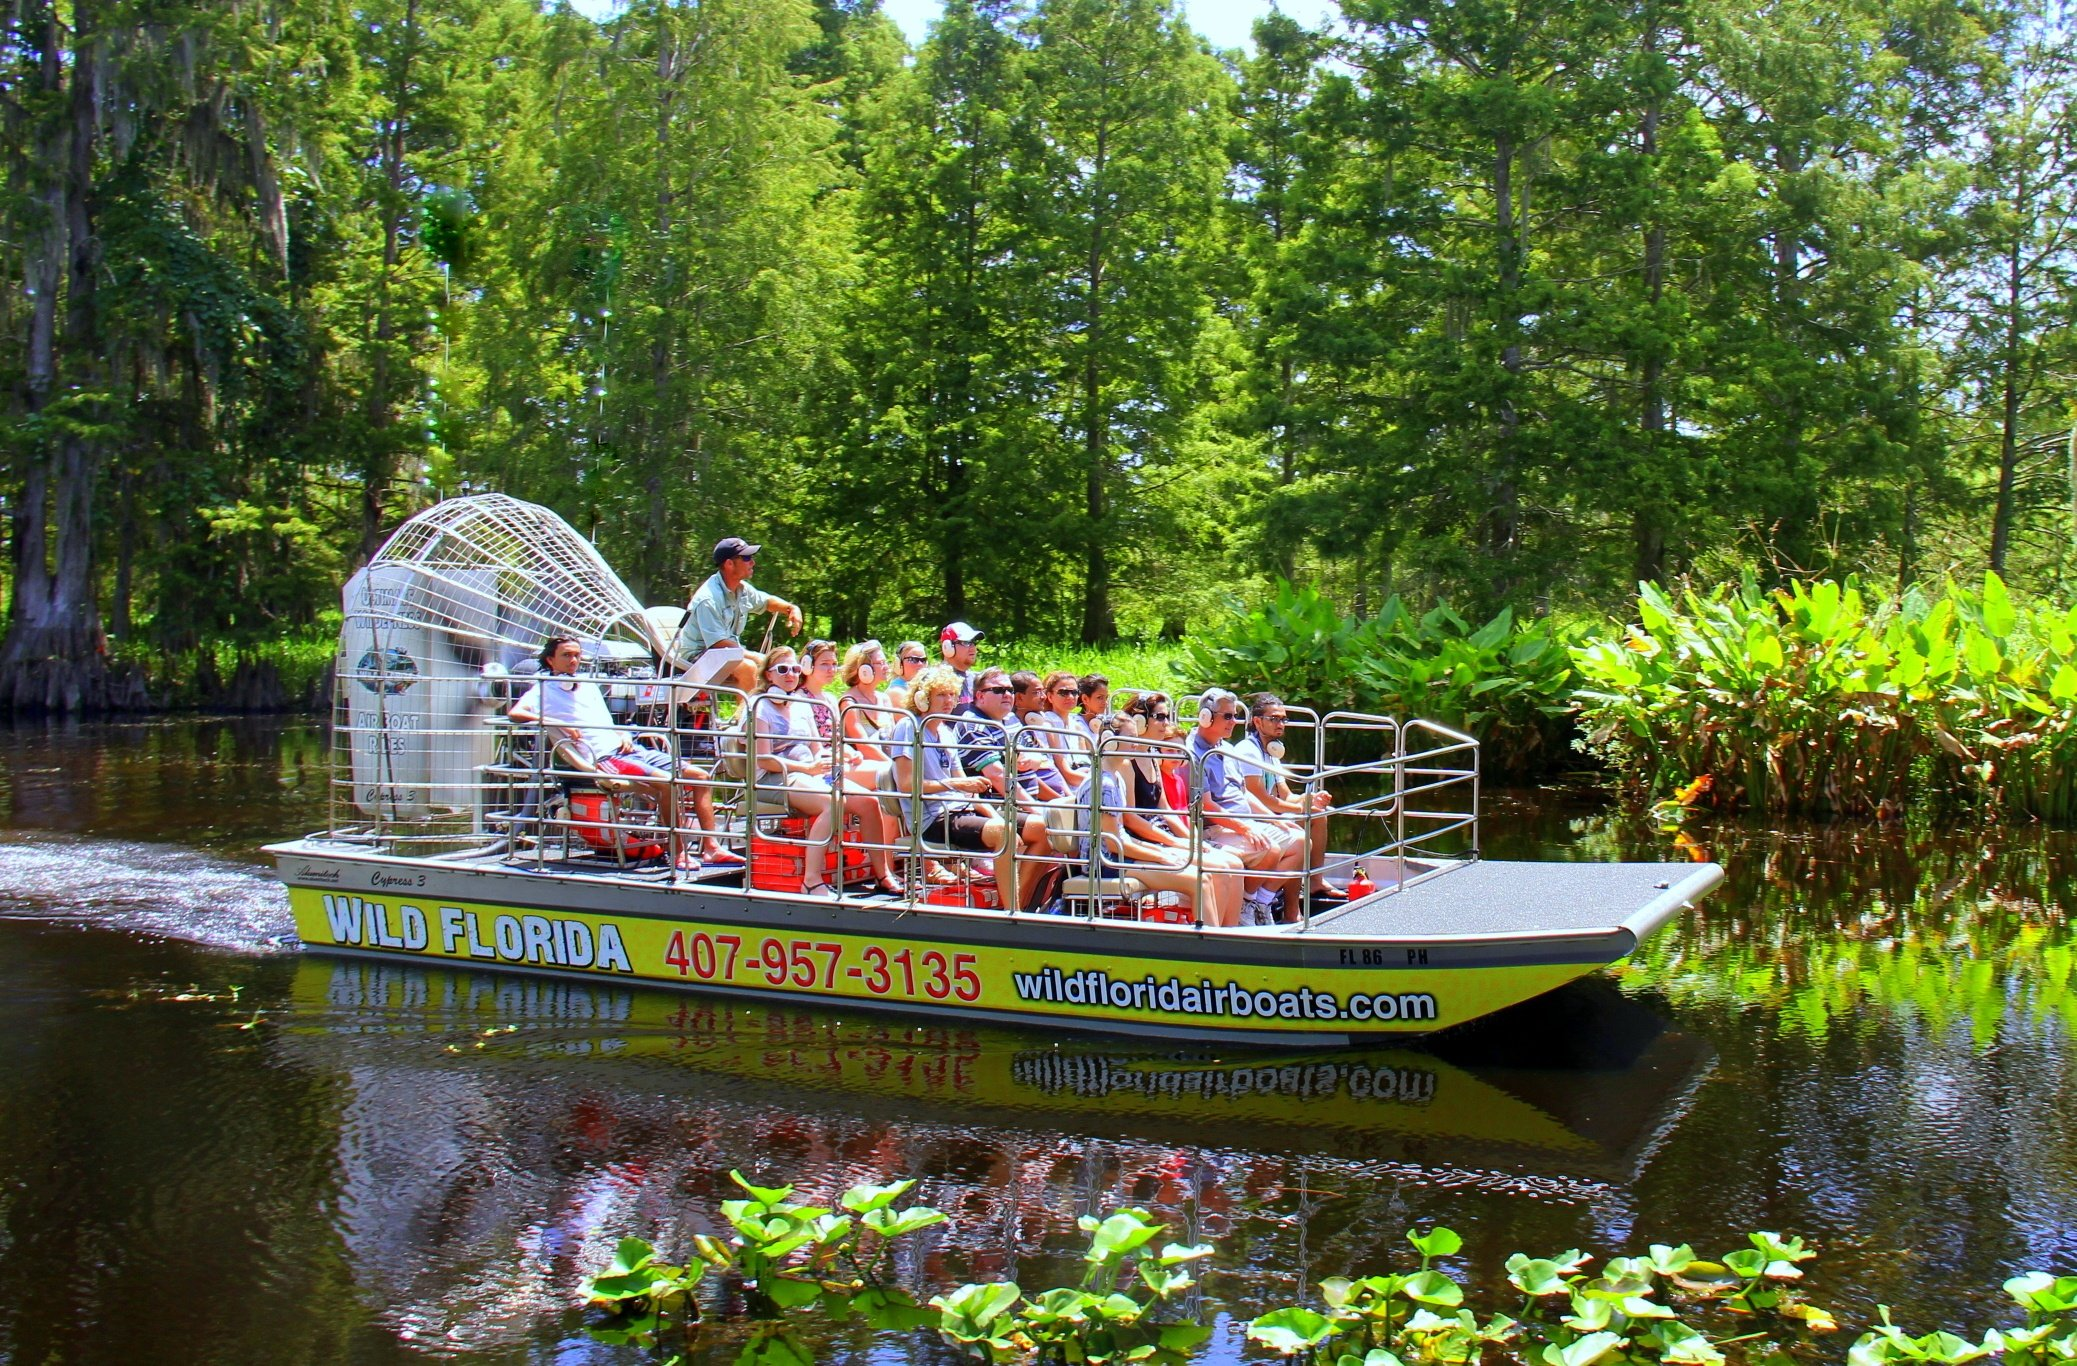 Wild Florida Airboat in Central Florida